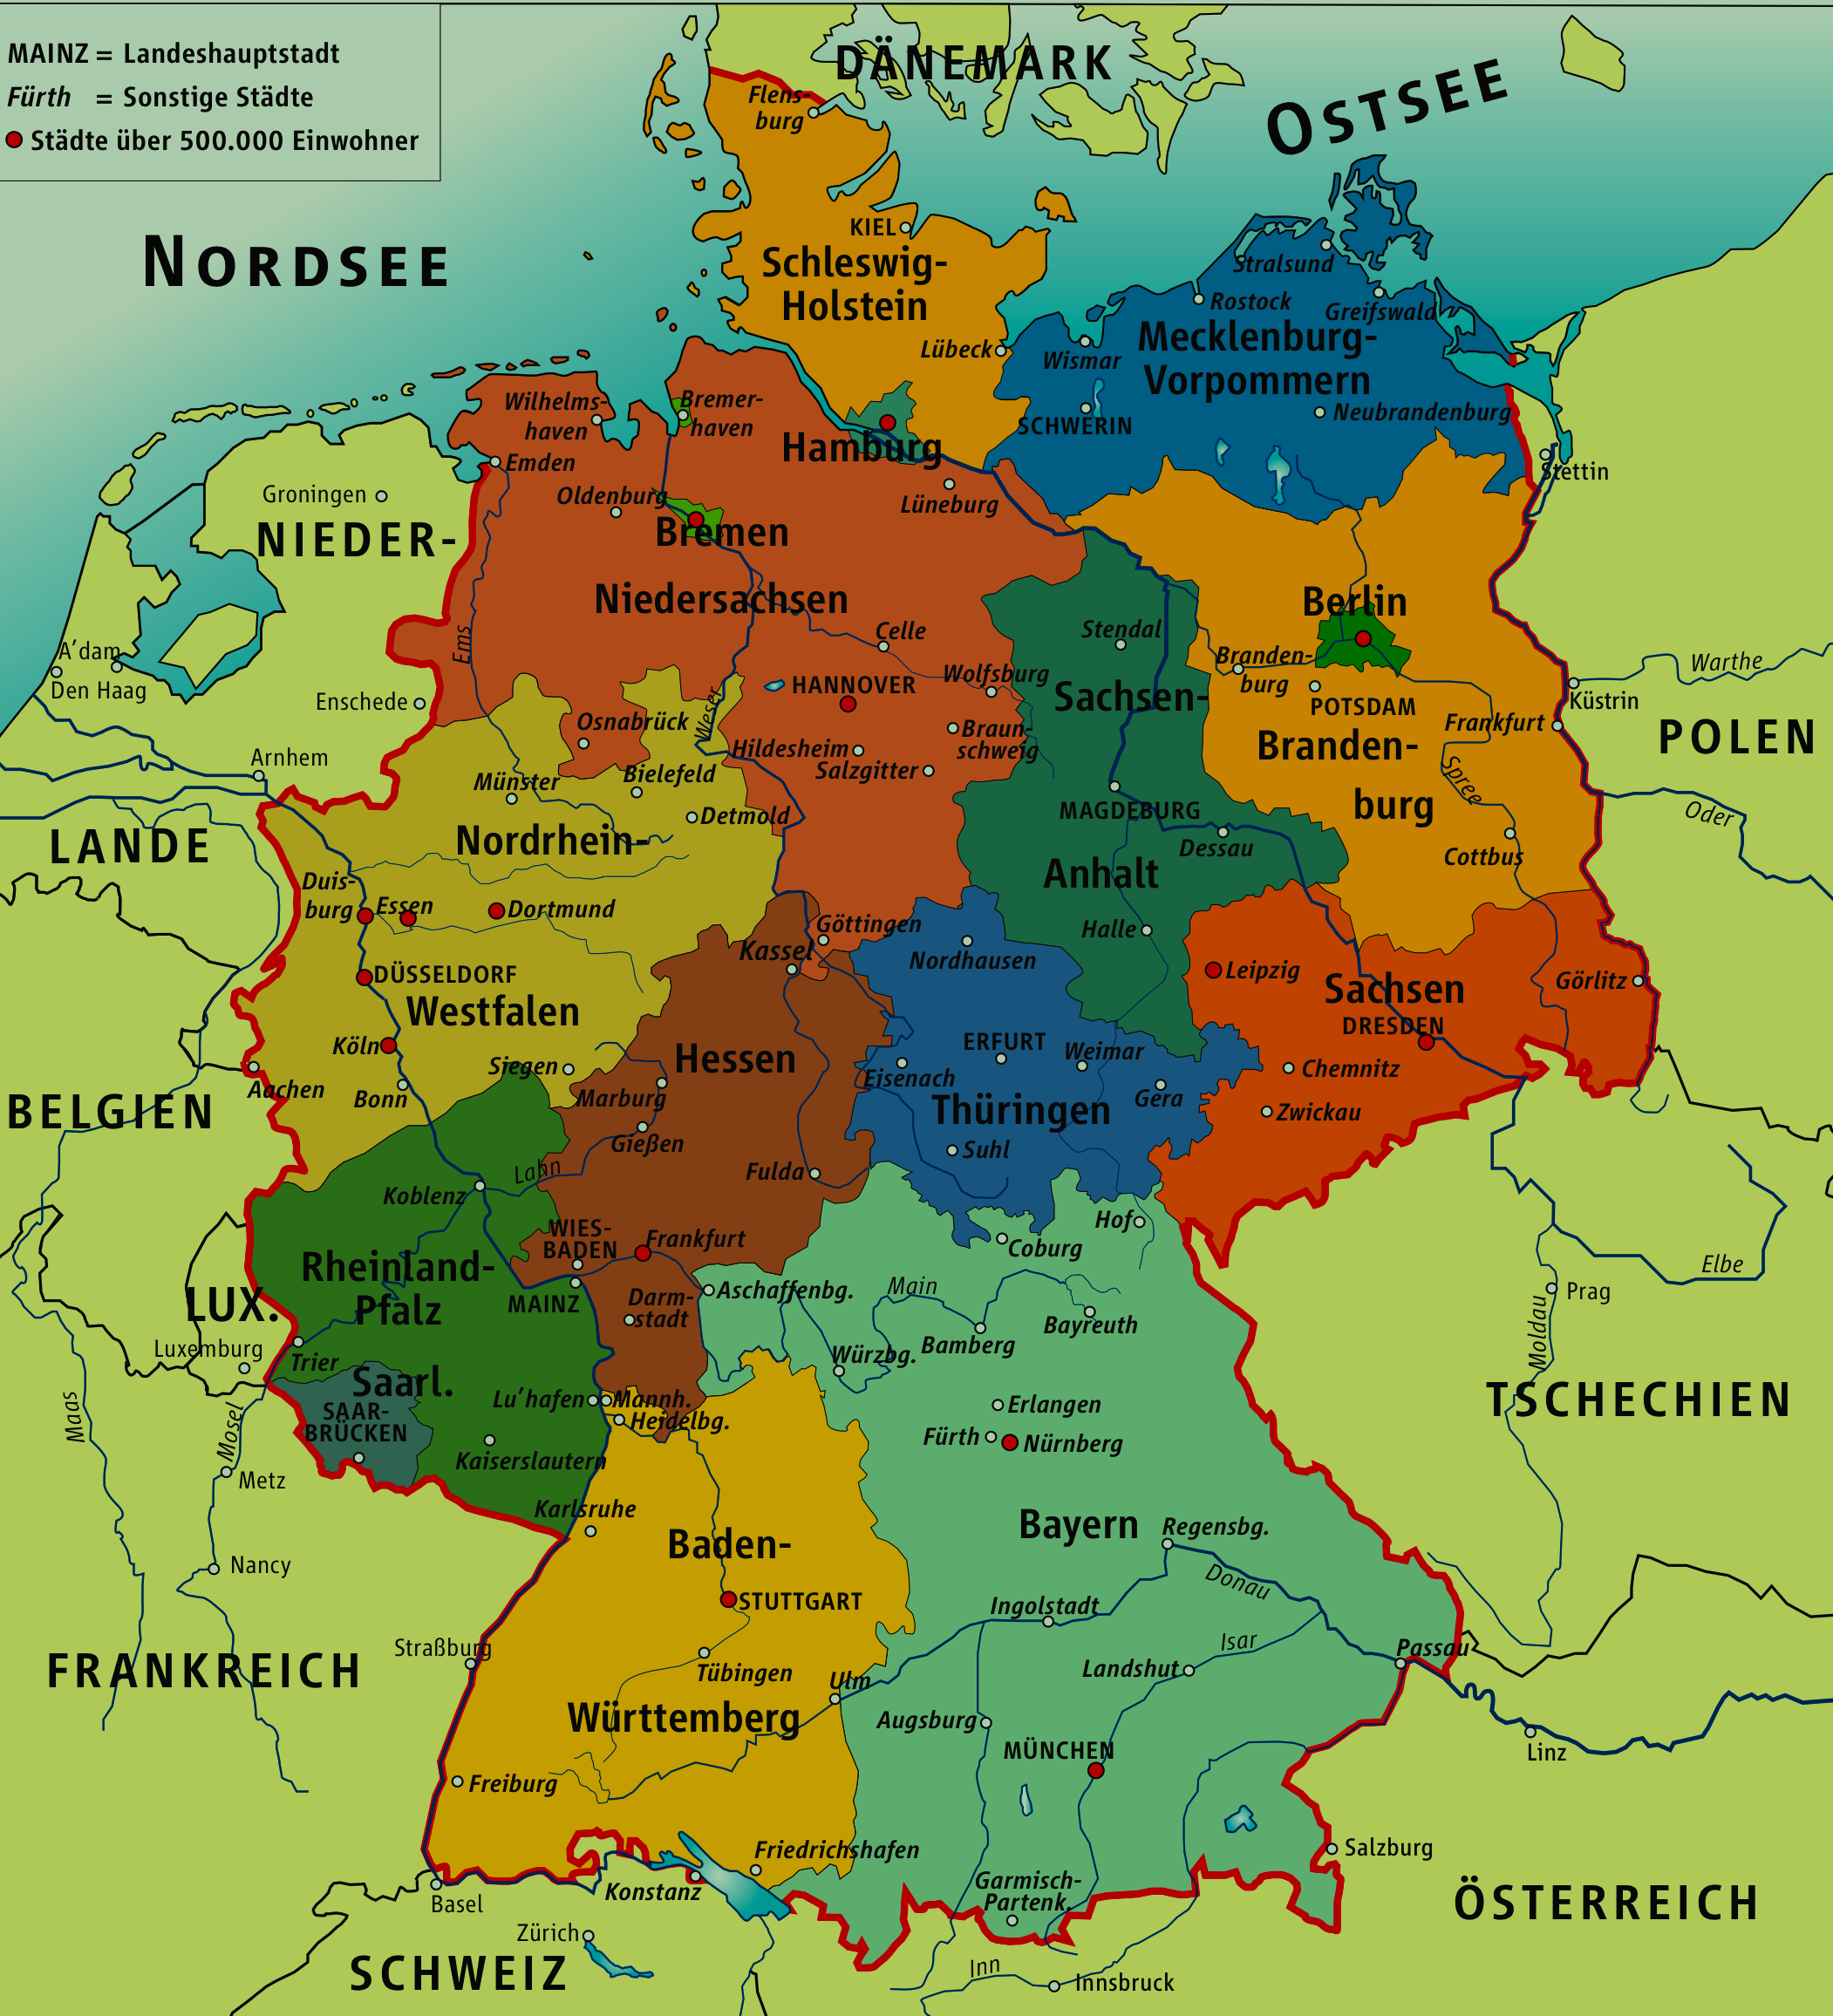 good pdf type map of germanypng 21022312 pixels